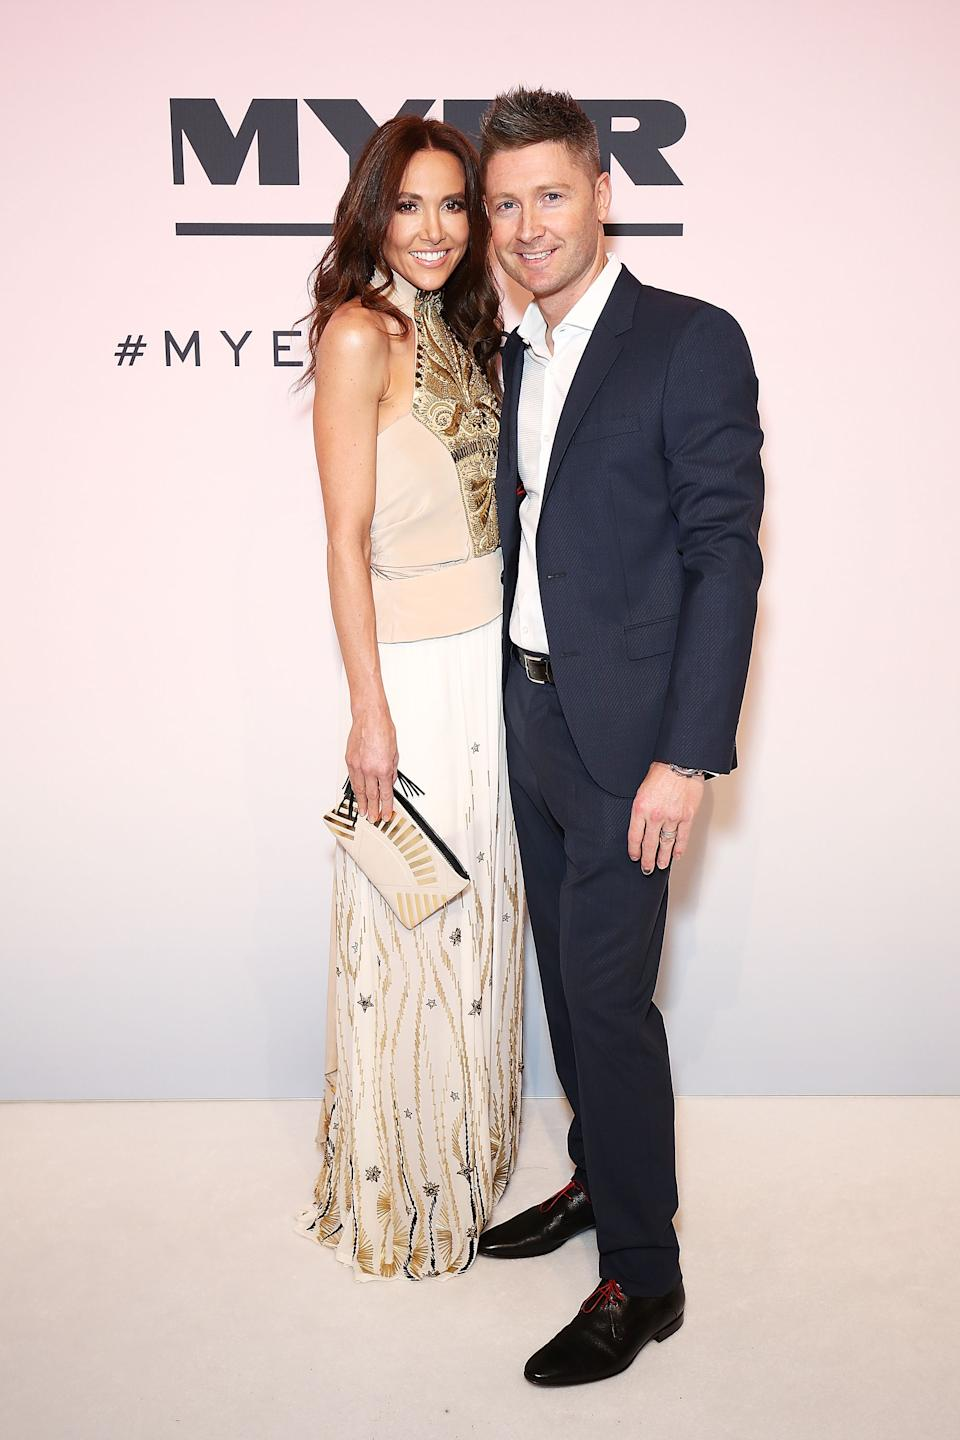 Kyly Clarke and Michael Clarke arrive ahead of the Myer Spring 16 Fashion Launch at Hordern Pavilion on August 23, 2016 in Sydney, Australia.